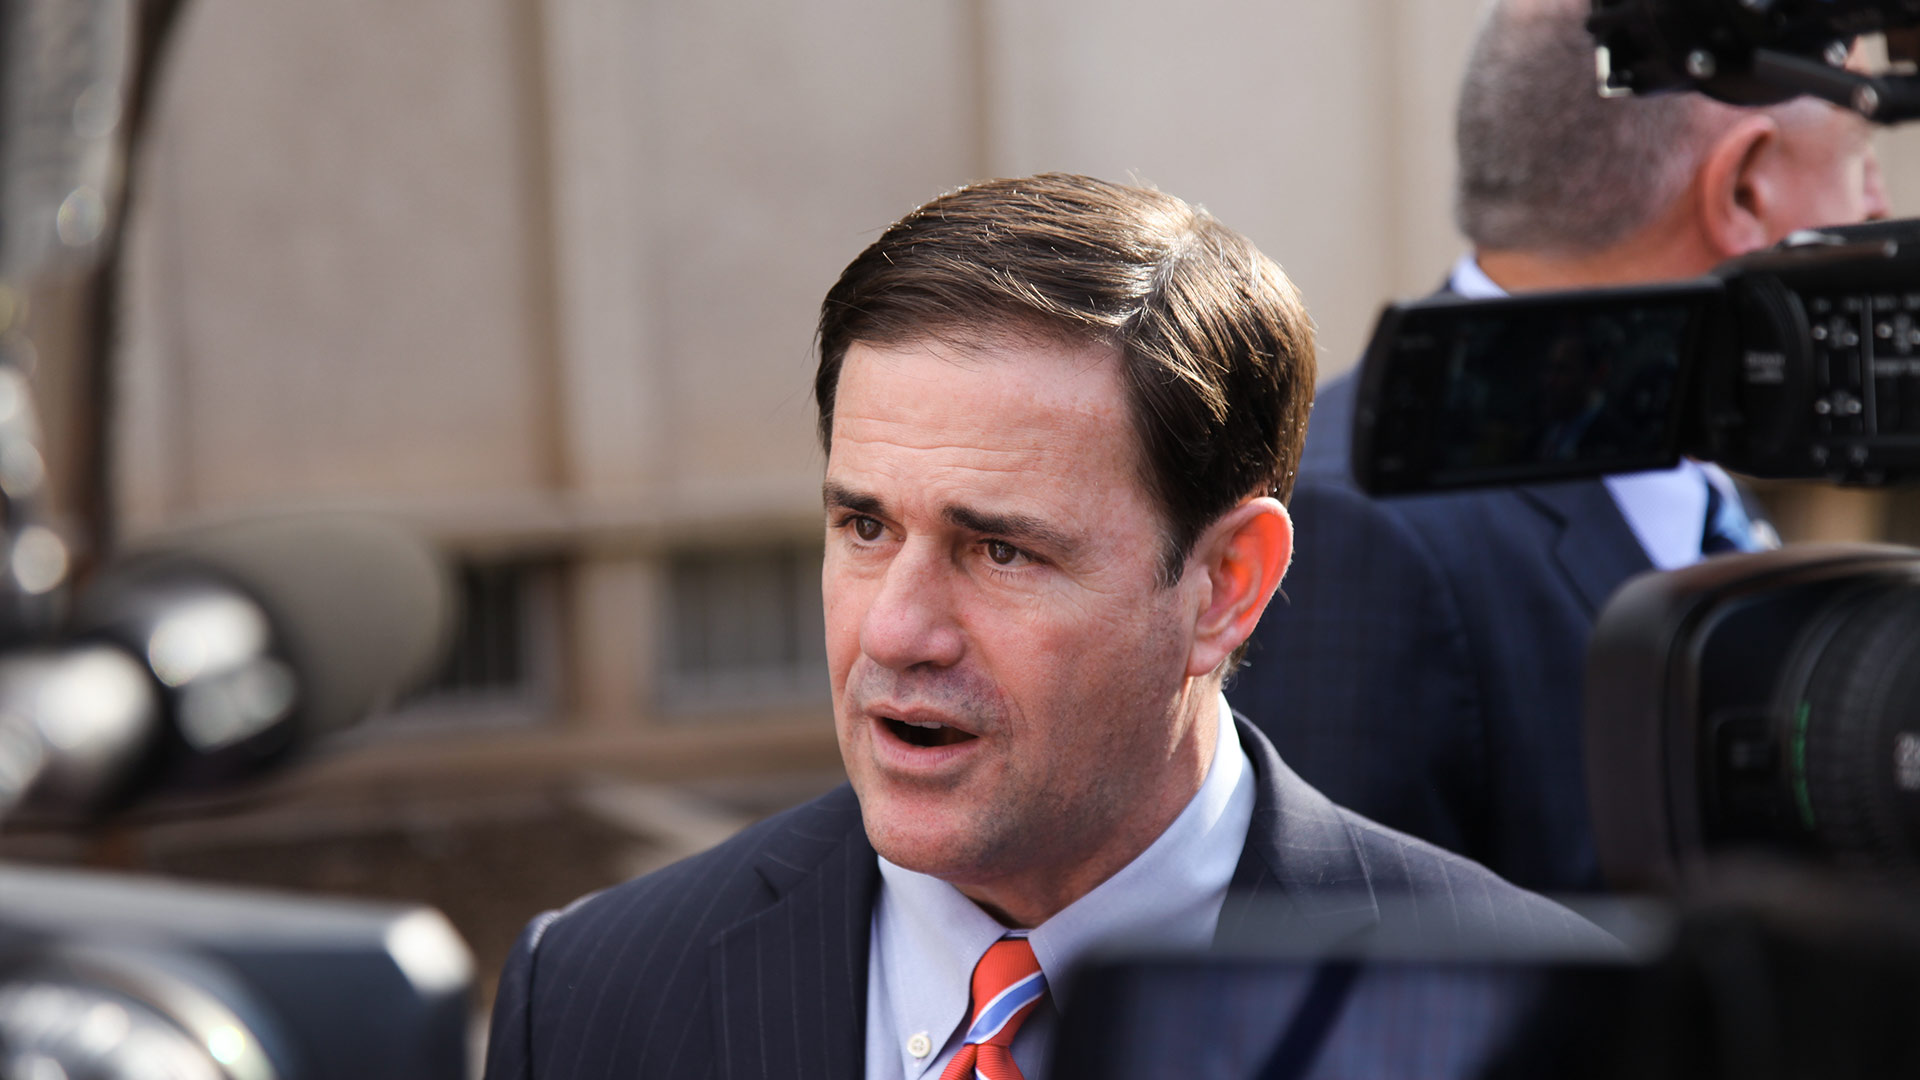 Arizona Gov. Doug Ducey's funding plan proposes a 19 percent pay increase for teachers by 2020.